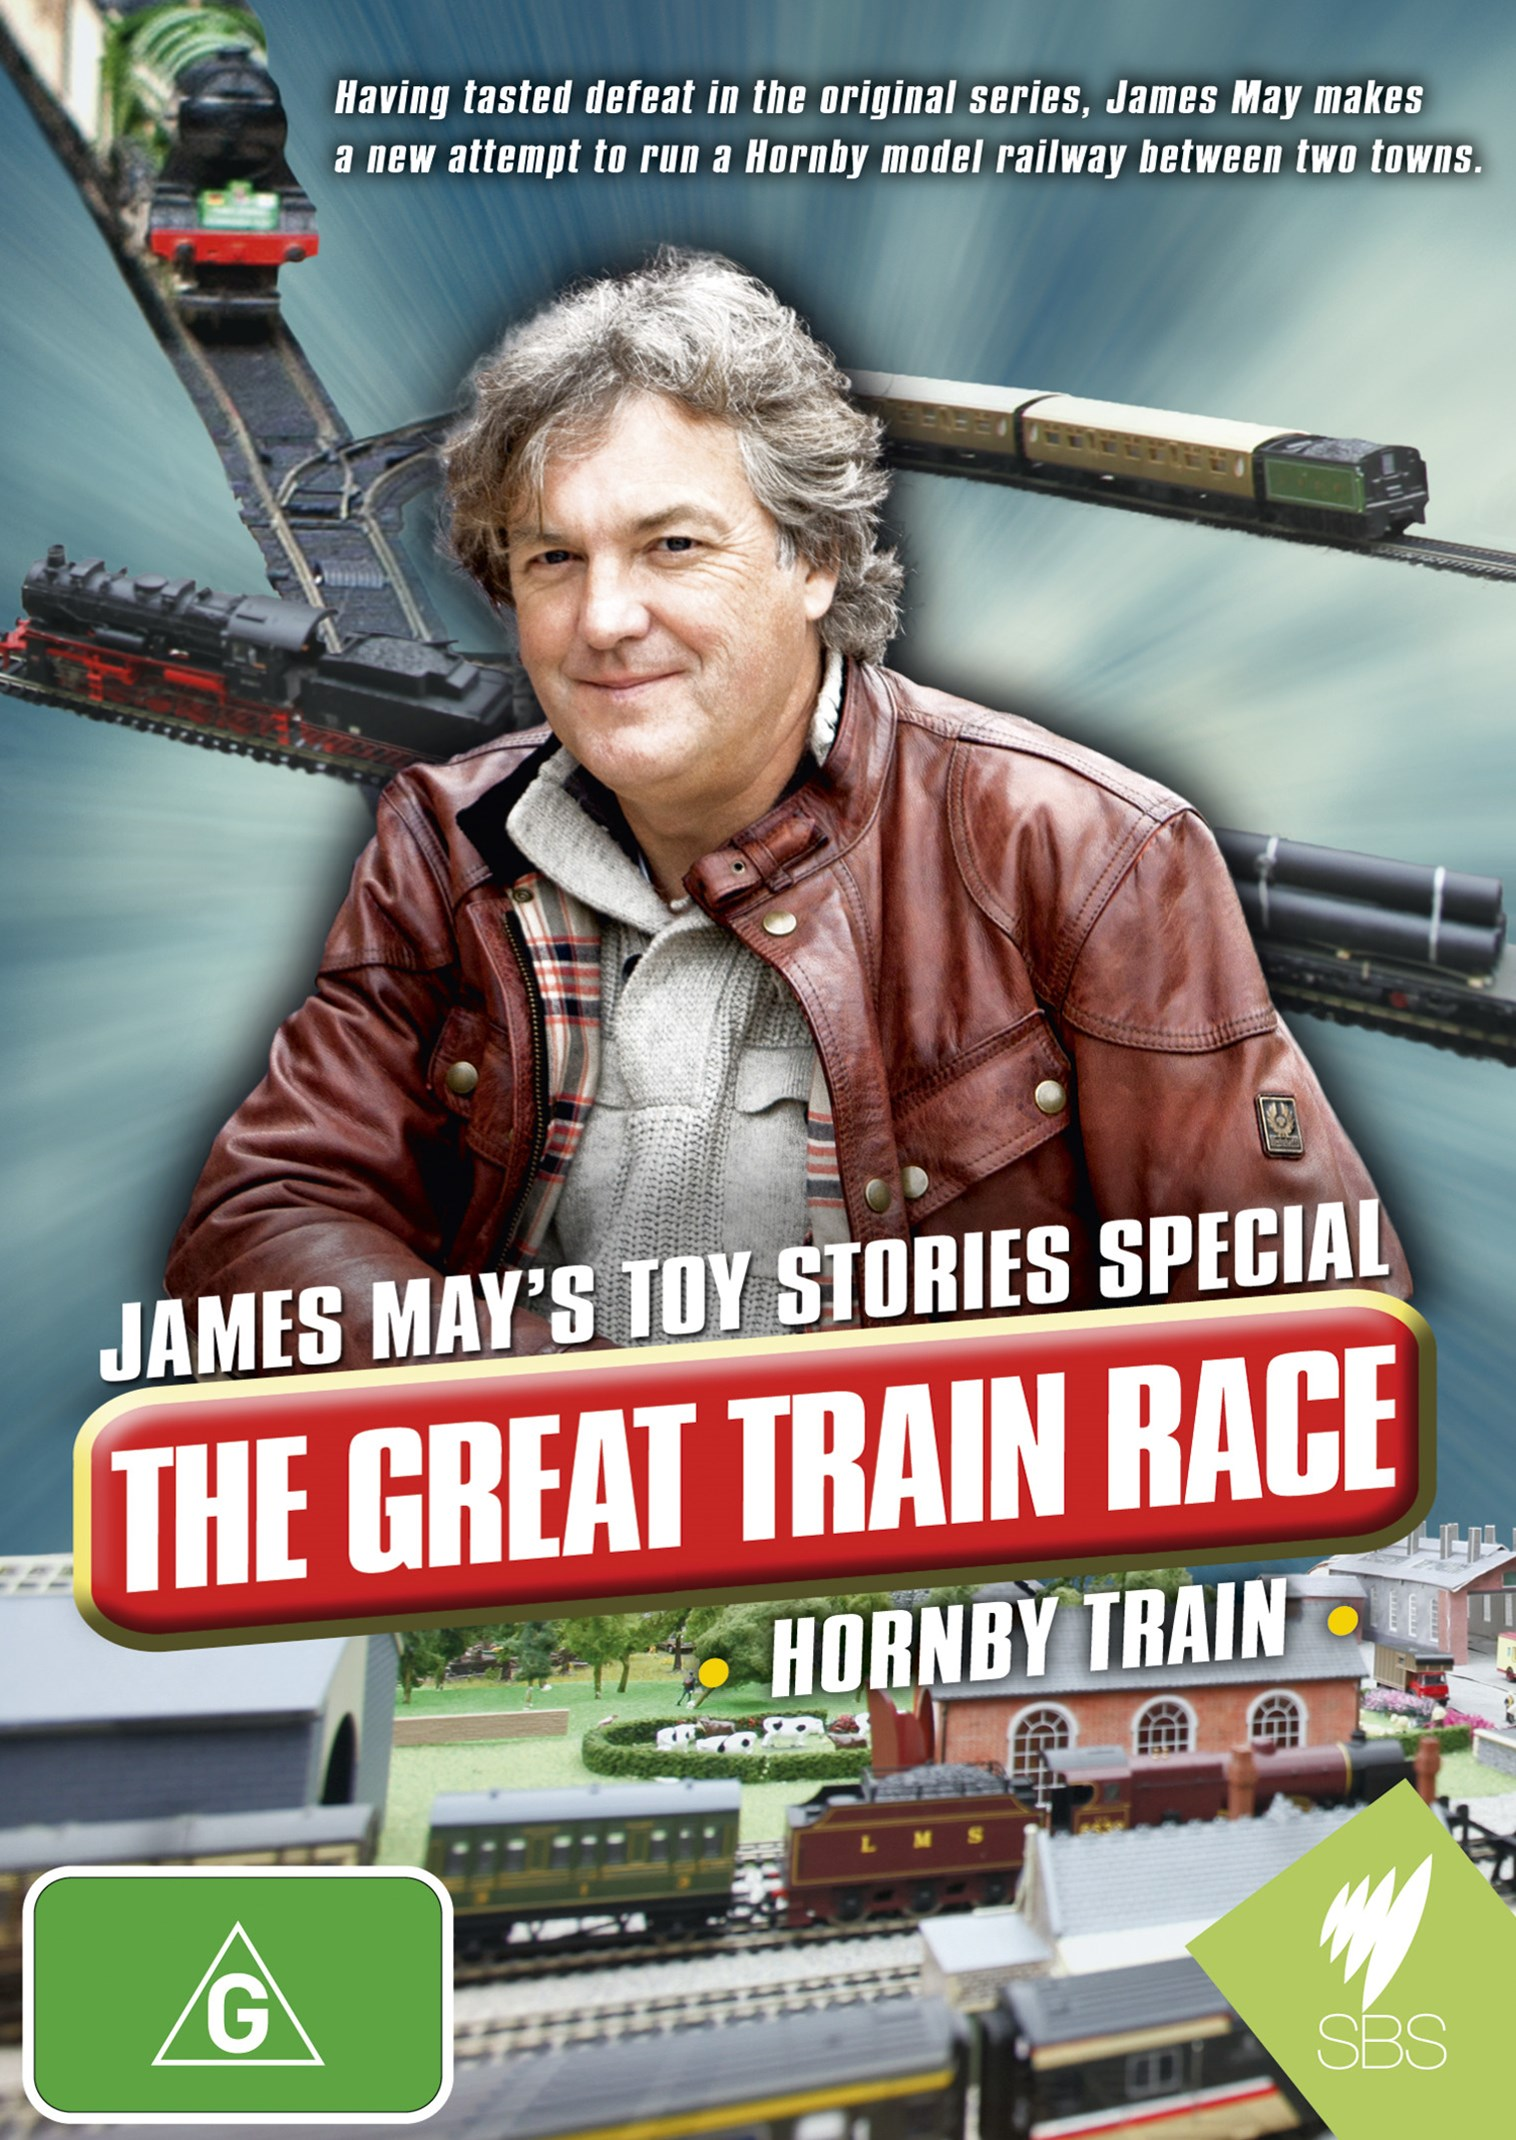 James May's Toy Stories Special: The Great Train Race - Hornby Train